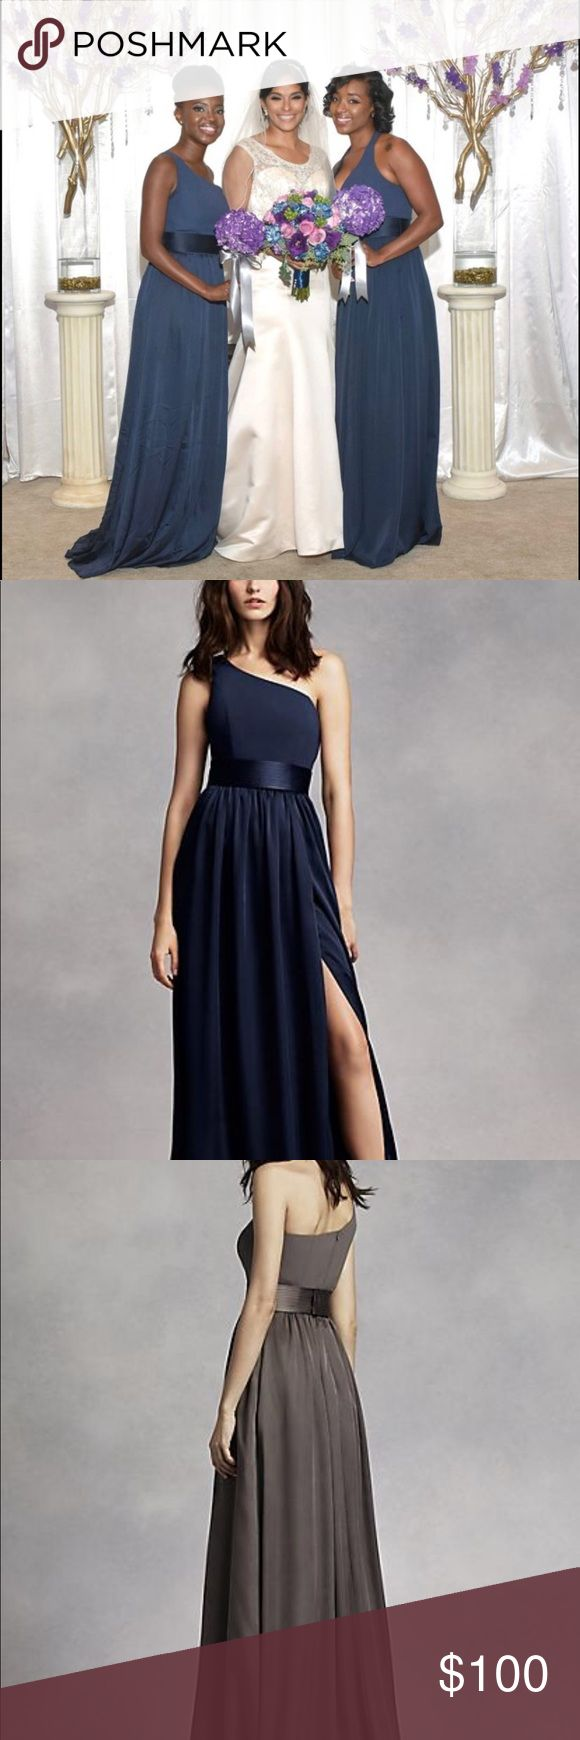 David's Bridal Vera Wang One Shoulder Dress Timeless and chic, this midnight colored, floor sweeping  dress draws a romantic appeal! One shoulder ...